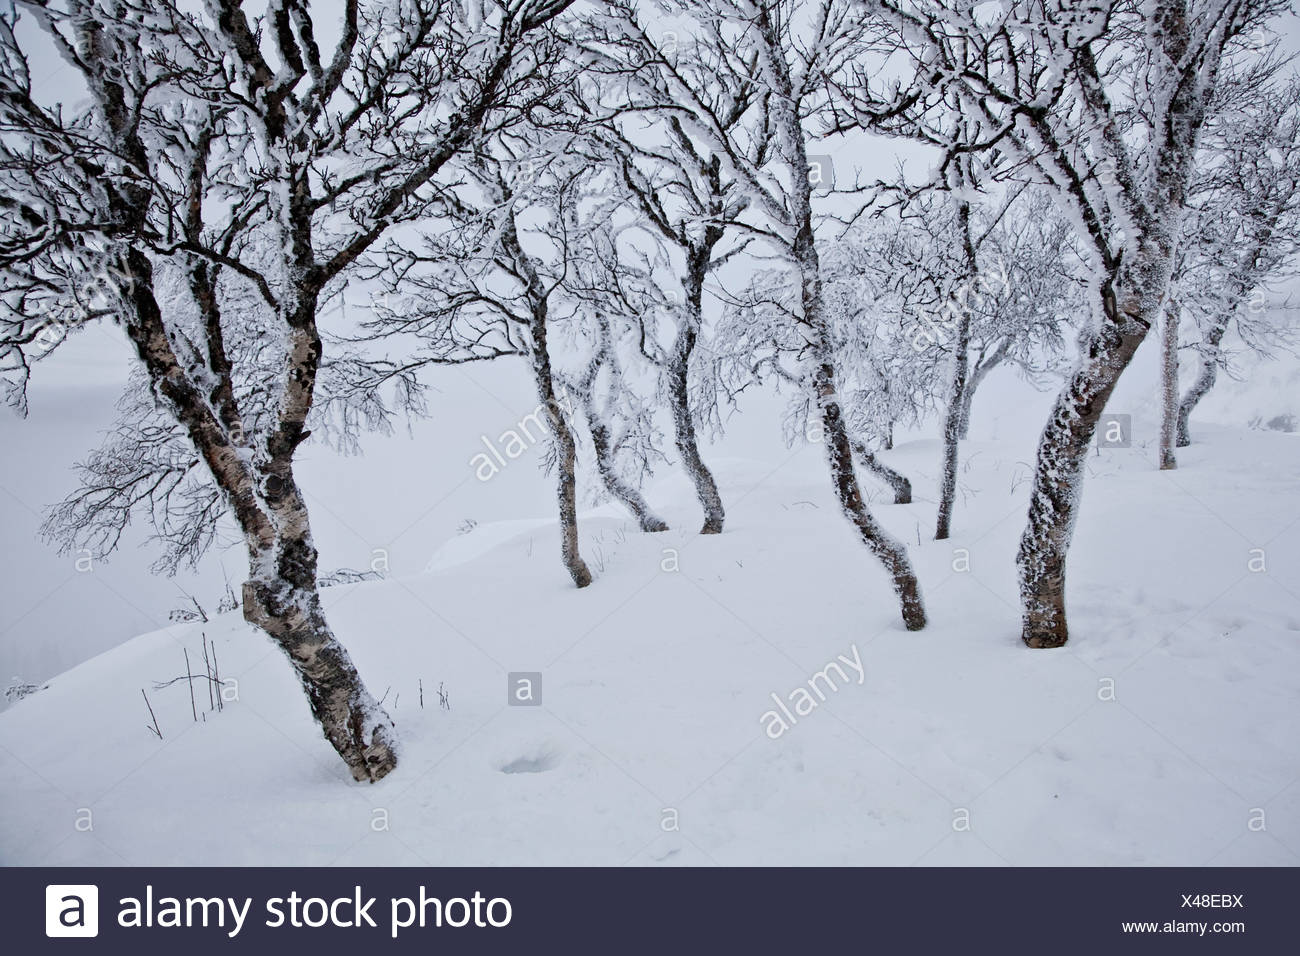 Bare trees in snow - Stock Image